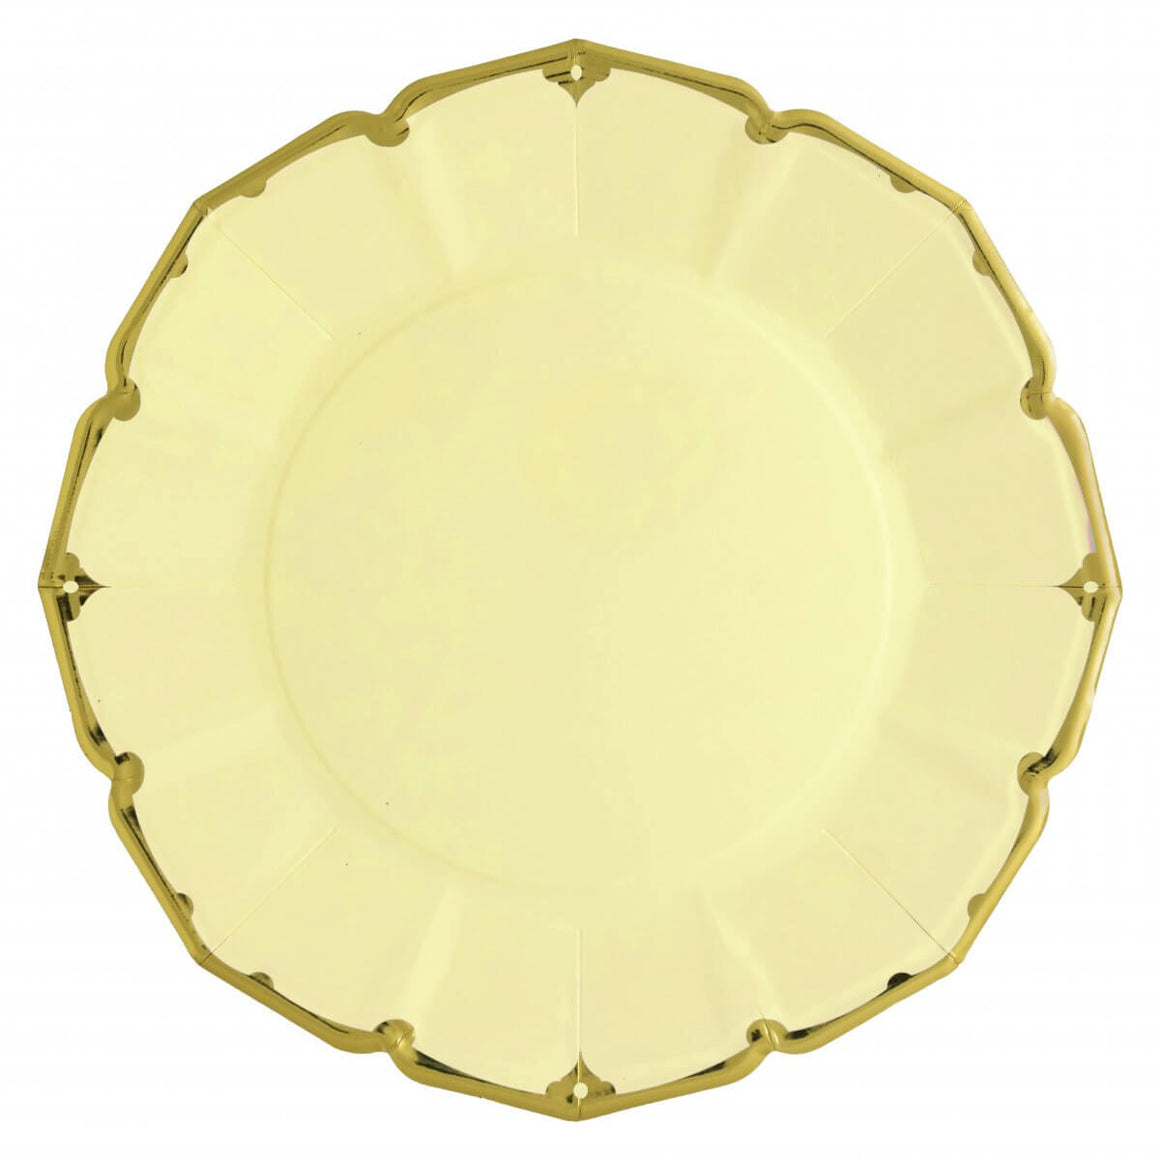 PLATES - DINNER SCALLOPED YELLOW